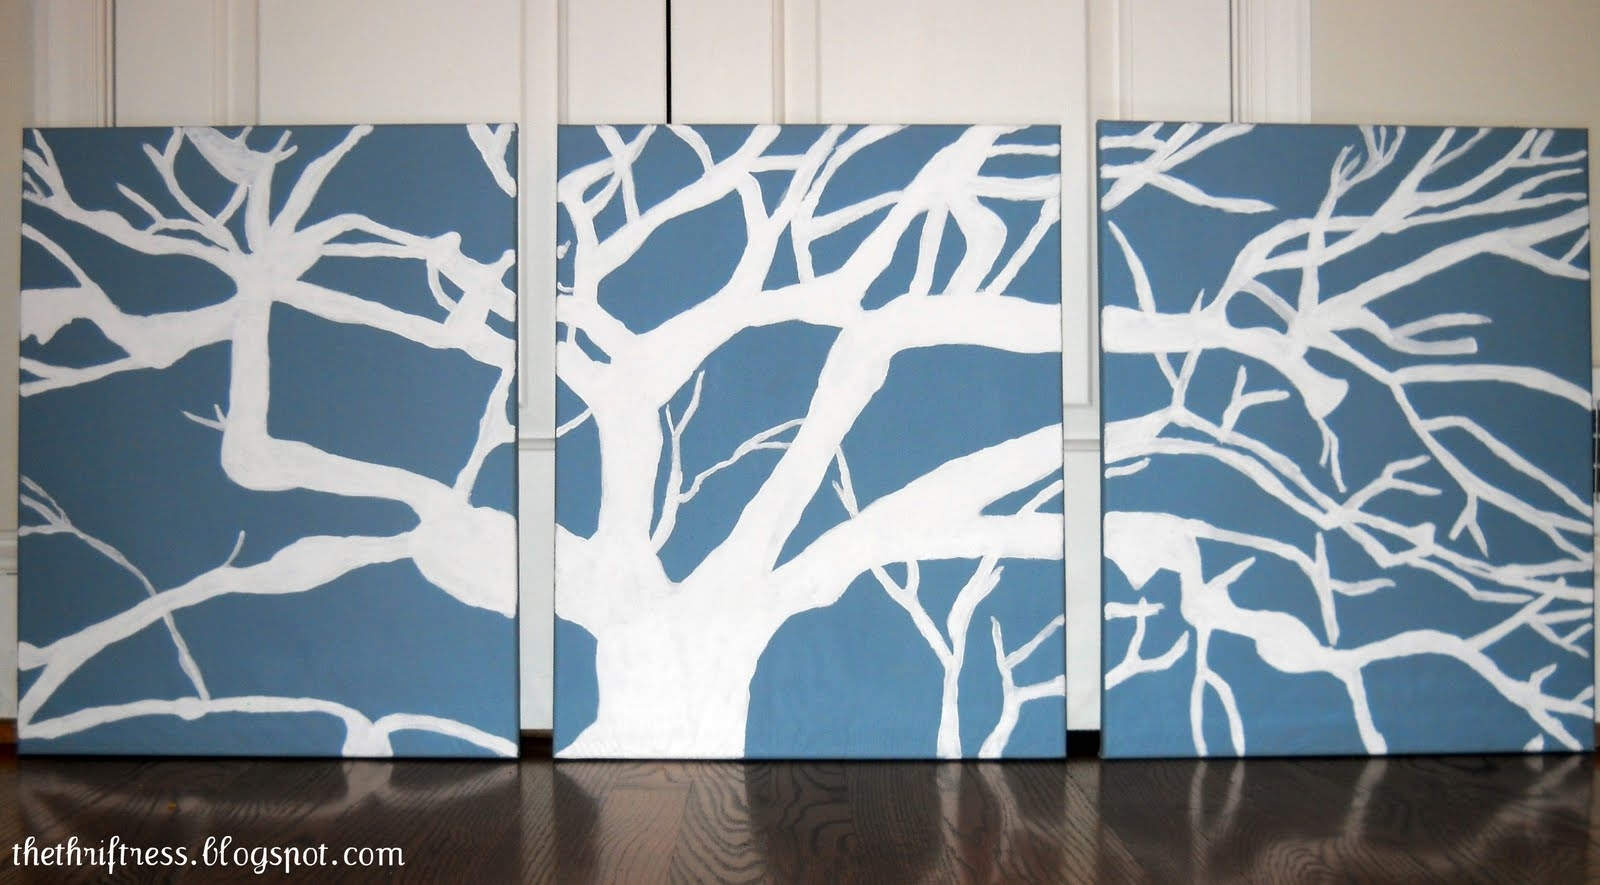 Diy Wall Art Stencils Paint Fabric – Dma Homes | #37854 Pertaining To Most Current Large Modern Fabric Wall Art (View 6 of 15)